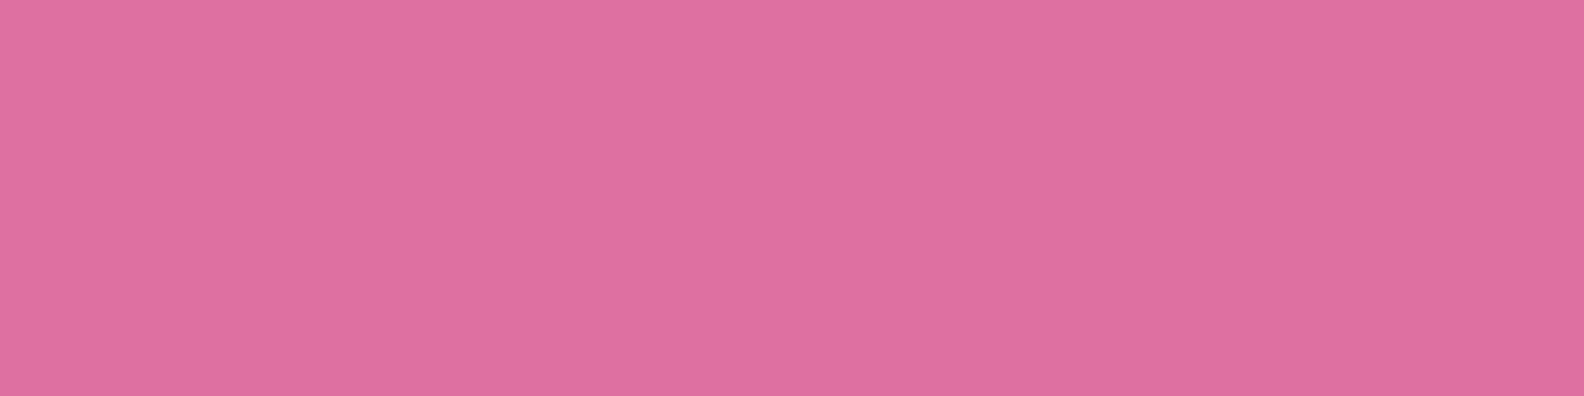 1584x396 Thulian Pink Solid Color Background